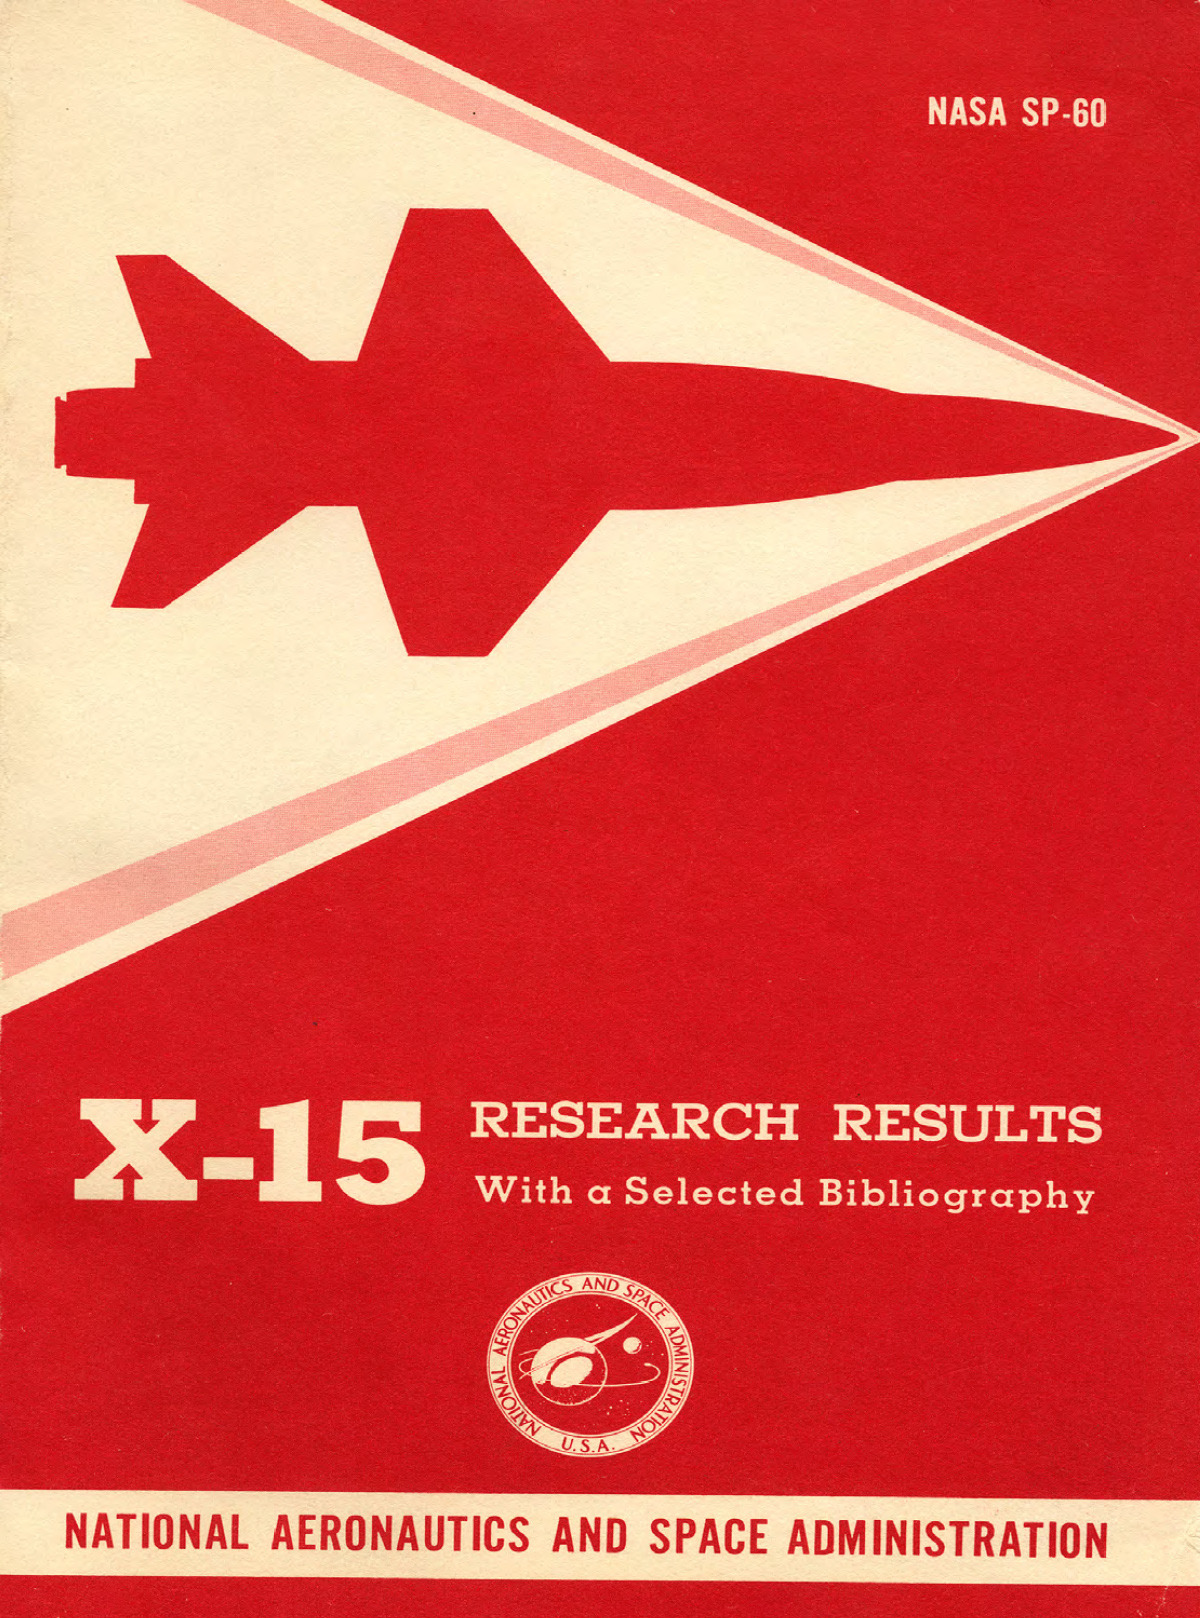 X-15 Research Results by Wendell H. Stillwell. NASA, 1965,